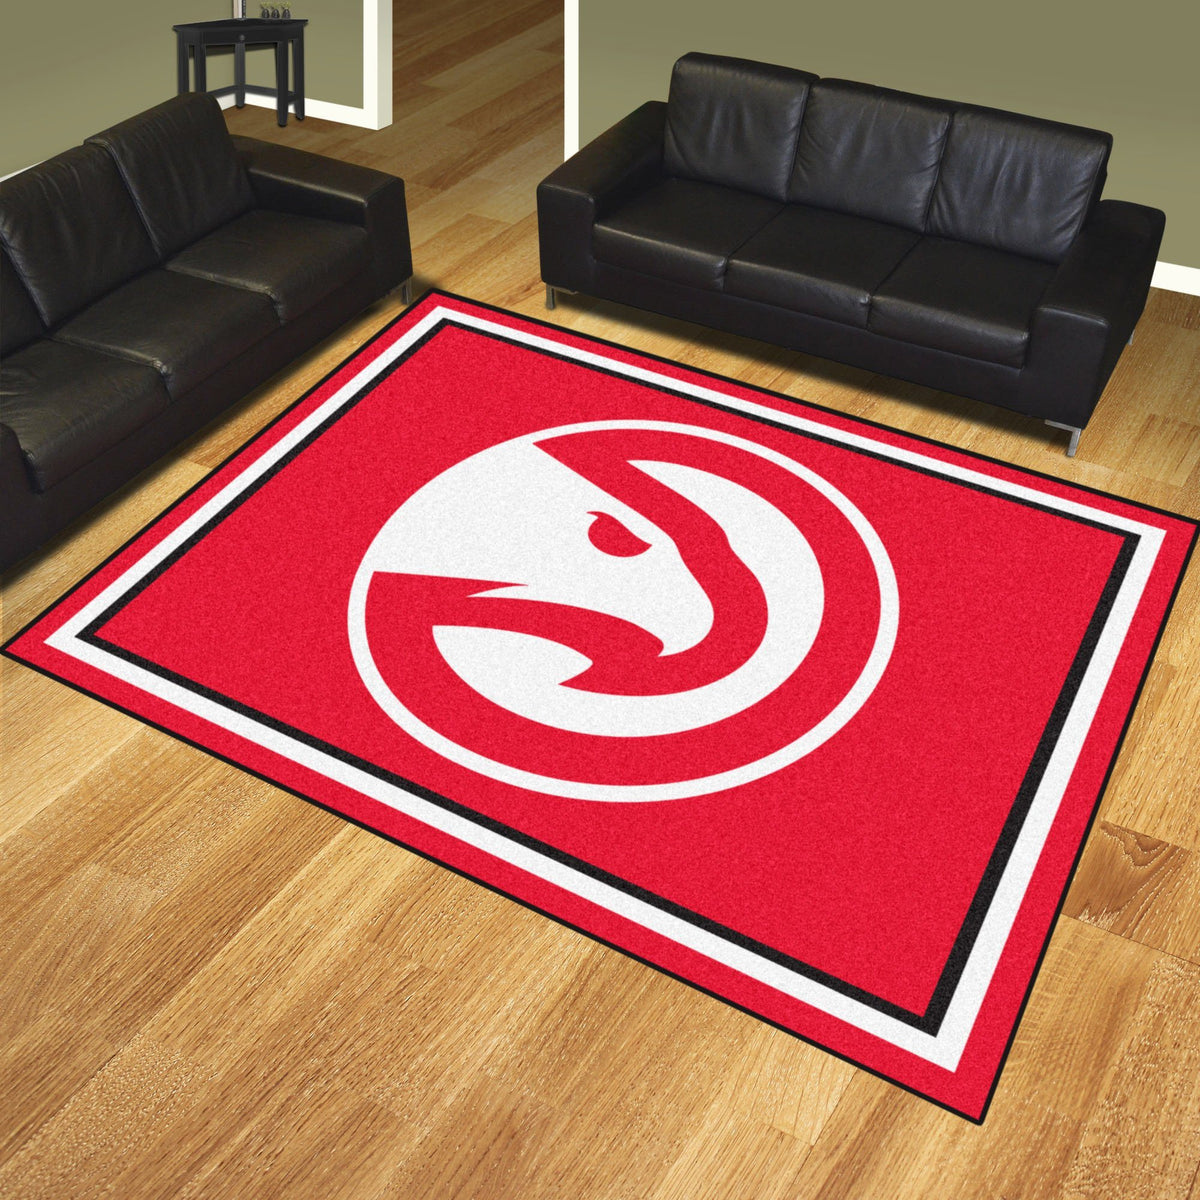 NBA - 8' x 10' Rug NBA Mats, Plush Rugs, 8x10 Rug, NBA, Home Fan Mats Atlanta Hawks